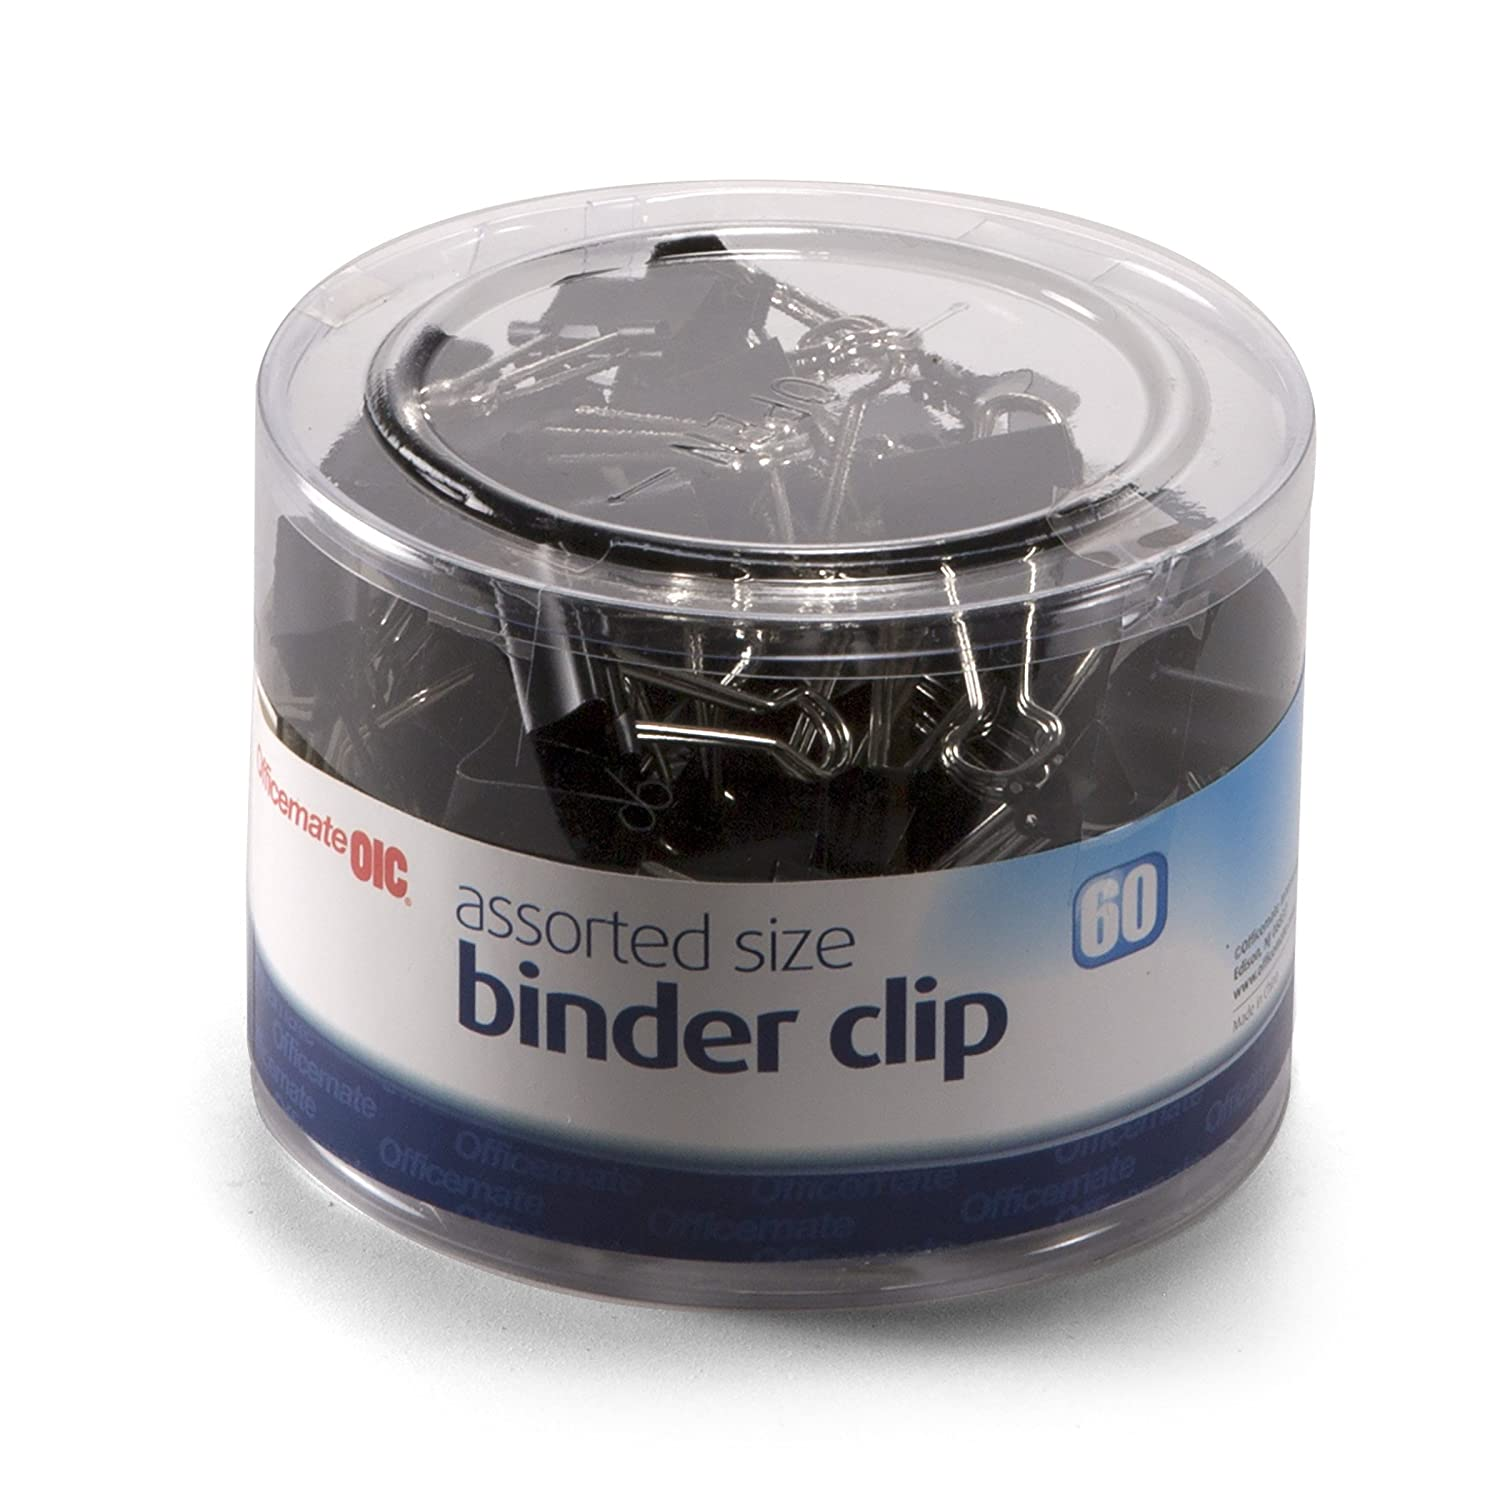 Officemate Assorted Size, 50 Small/10 Medium, Binder Clips, Black, 60 per Tub (31025) Officemate International